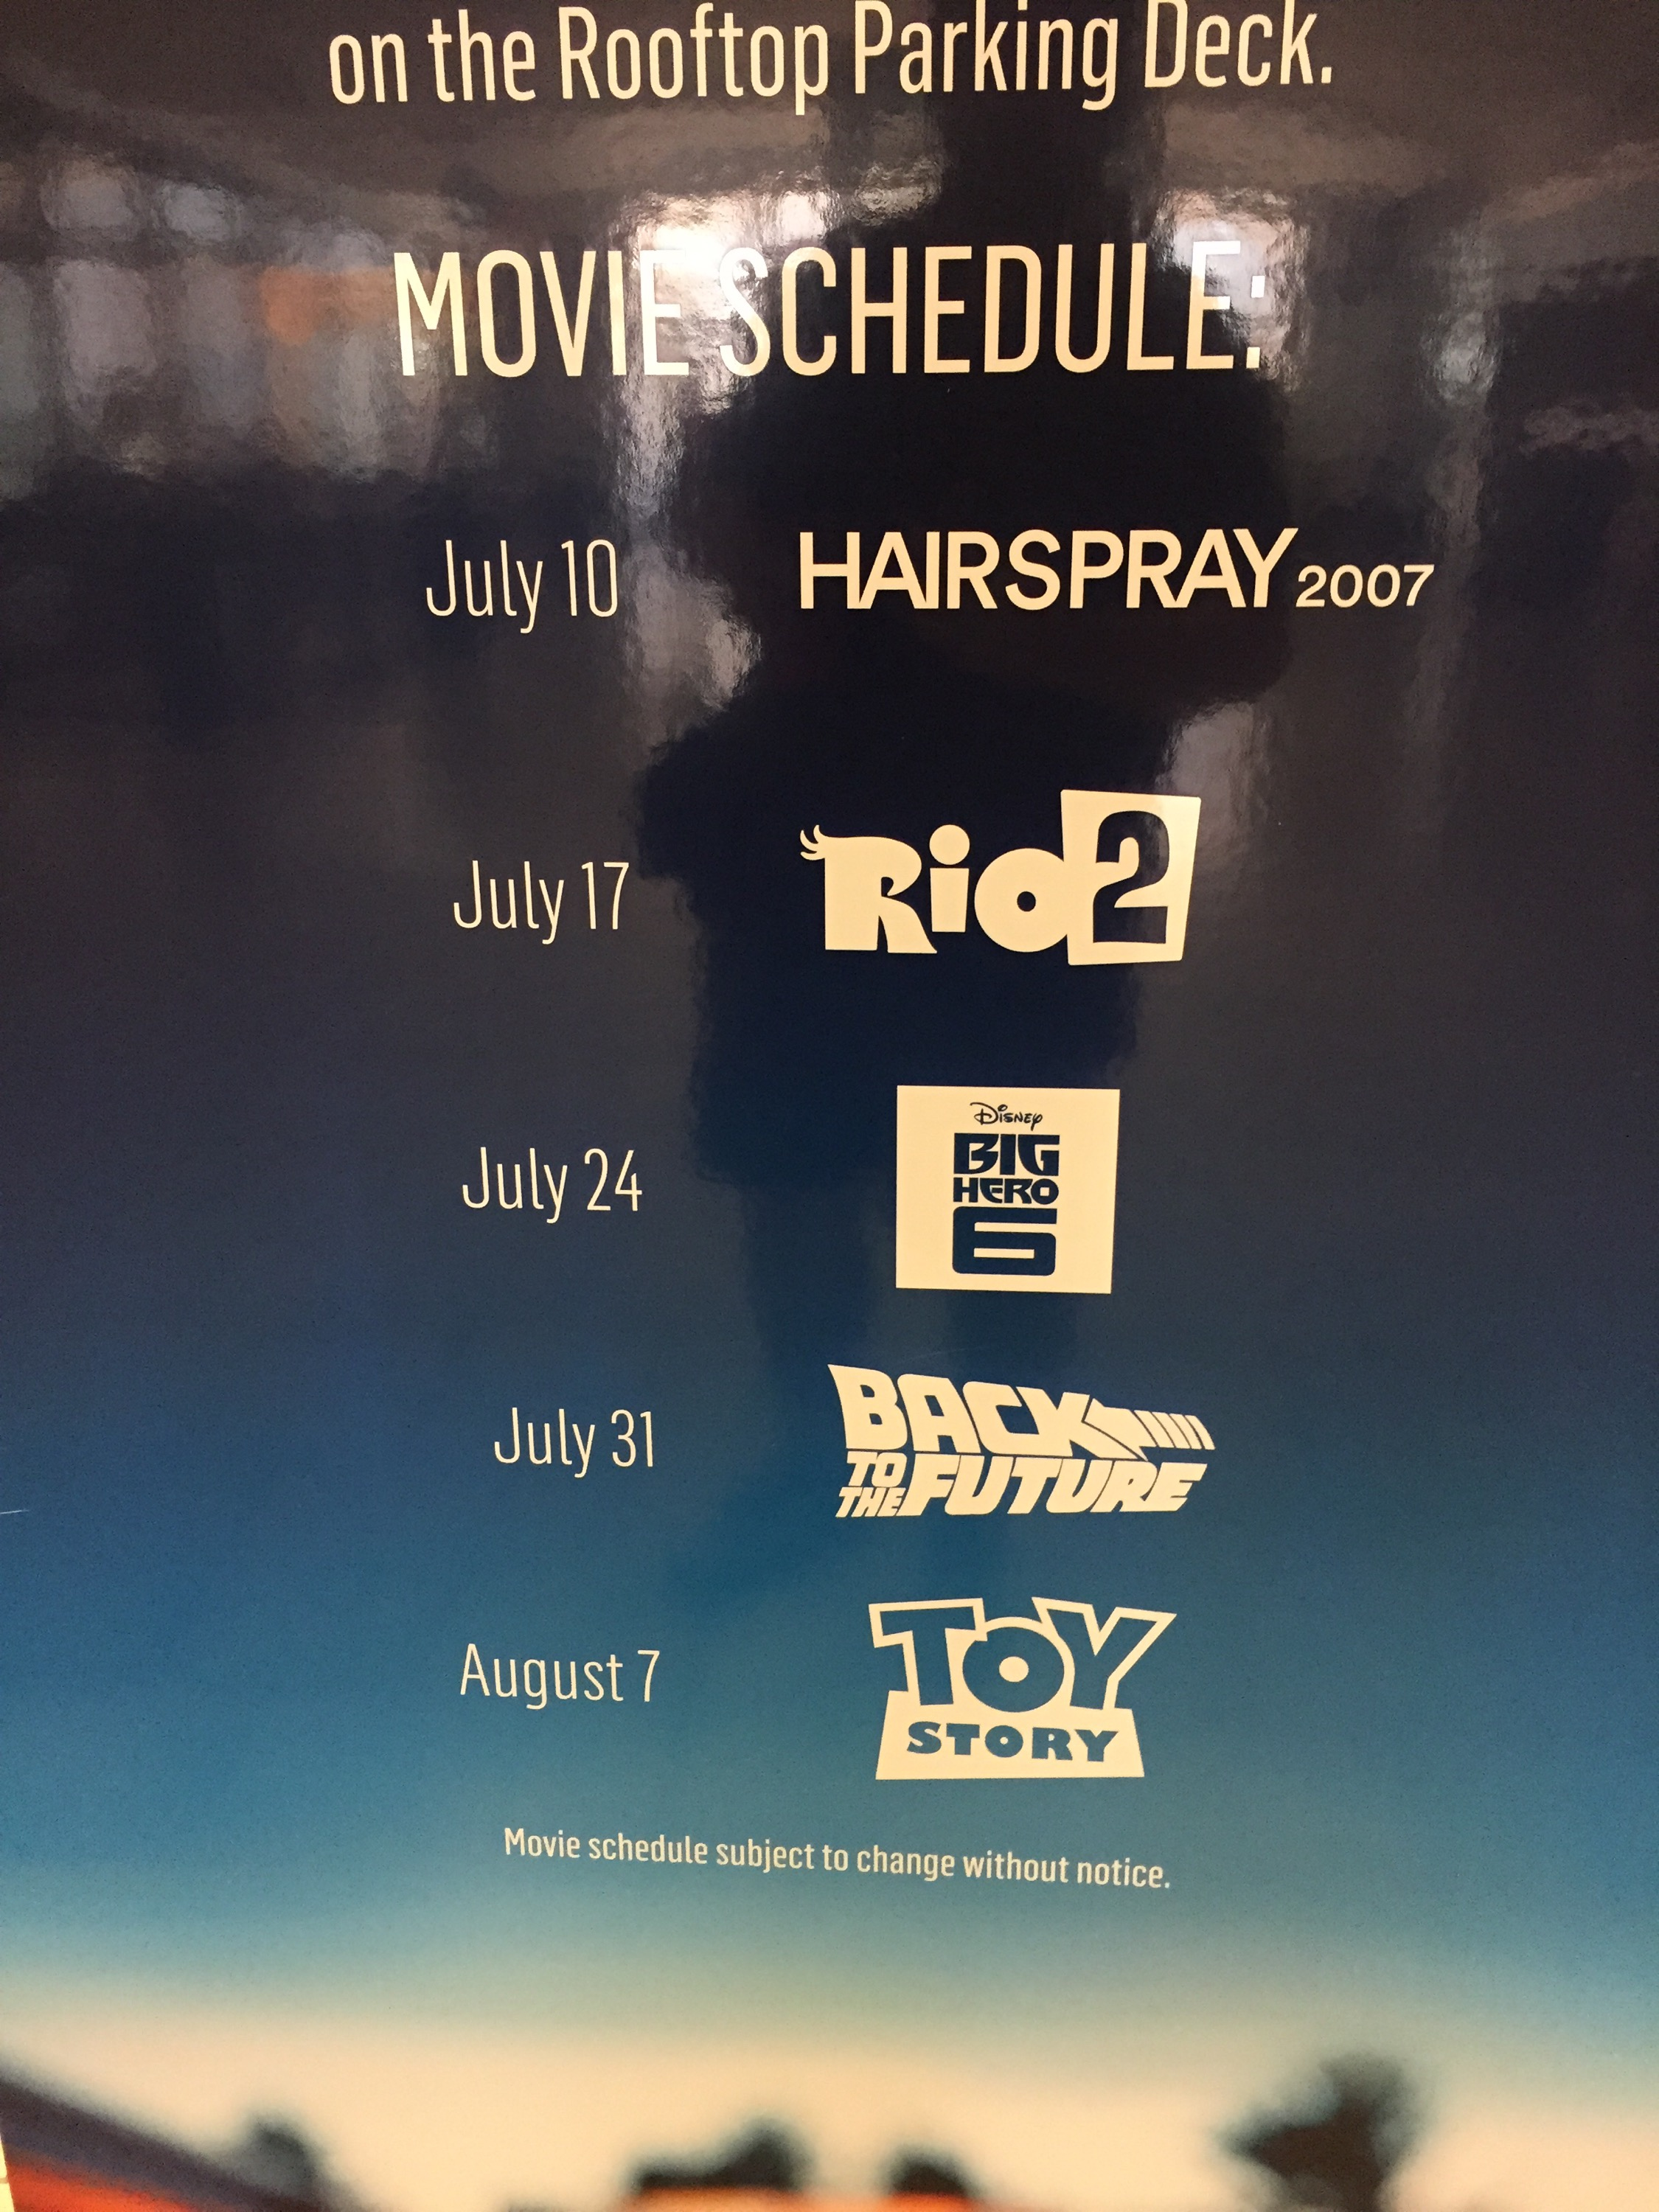 Los Angeles: Free Summer Movies at Westfield Fashion Square